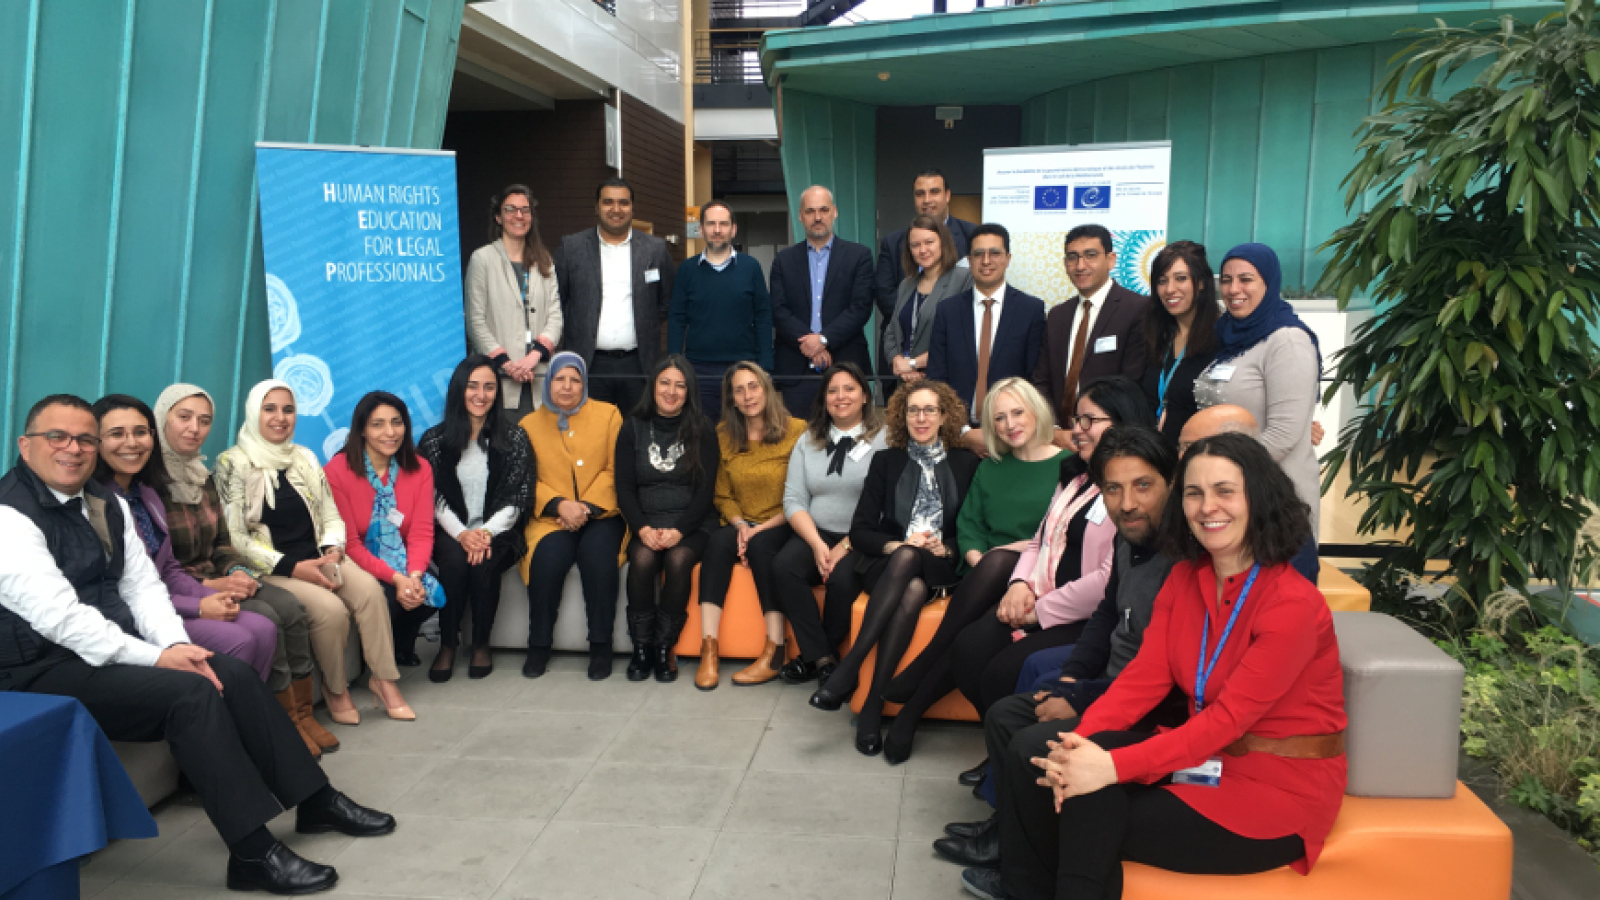 EU contributes in training legal professionals on applying human rights standards